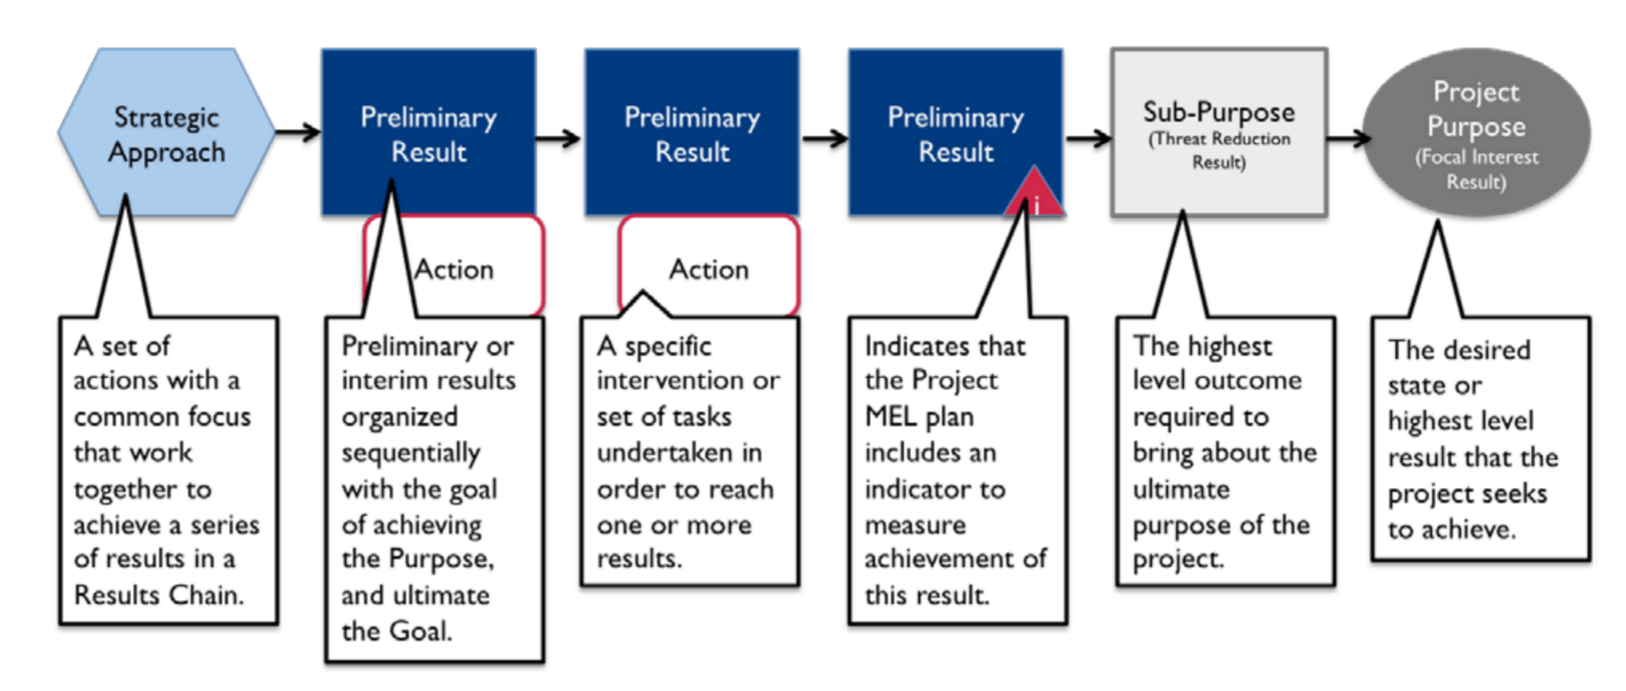 """Example of a """"results chain"""" logic model. Shows a series of circles and rectangles across the top of the image. The first shape is marked """"Strategic approach"""". The next three shapes are marked """"Preliminary result"""". The next shape after these is marked """"sub-purpose"""". Then the final shape is marked """"Project purpose"""". For each shape, a more detailed explanation is provided below it."""